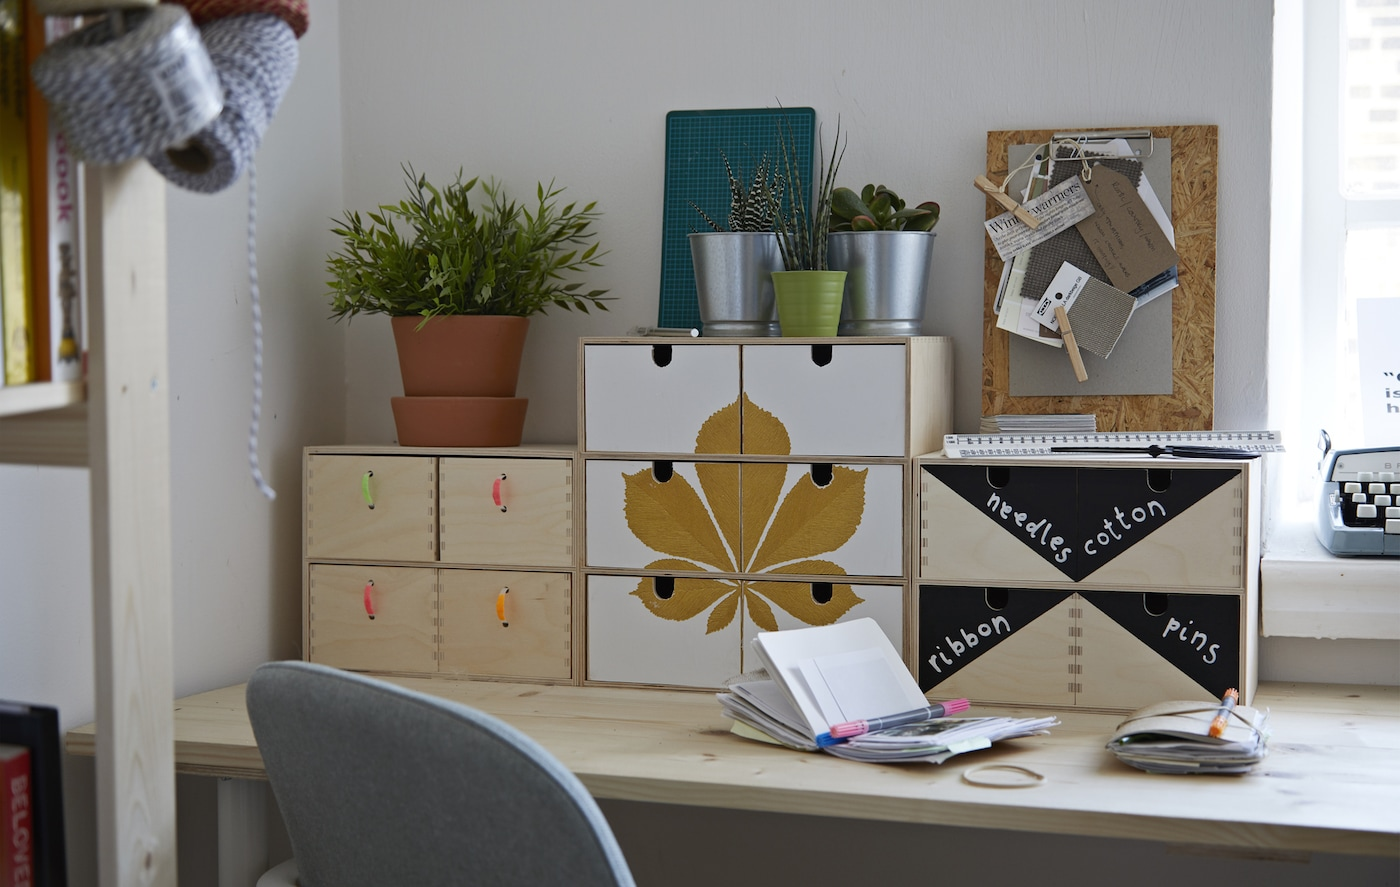 A desk with organisational drawers.